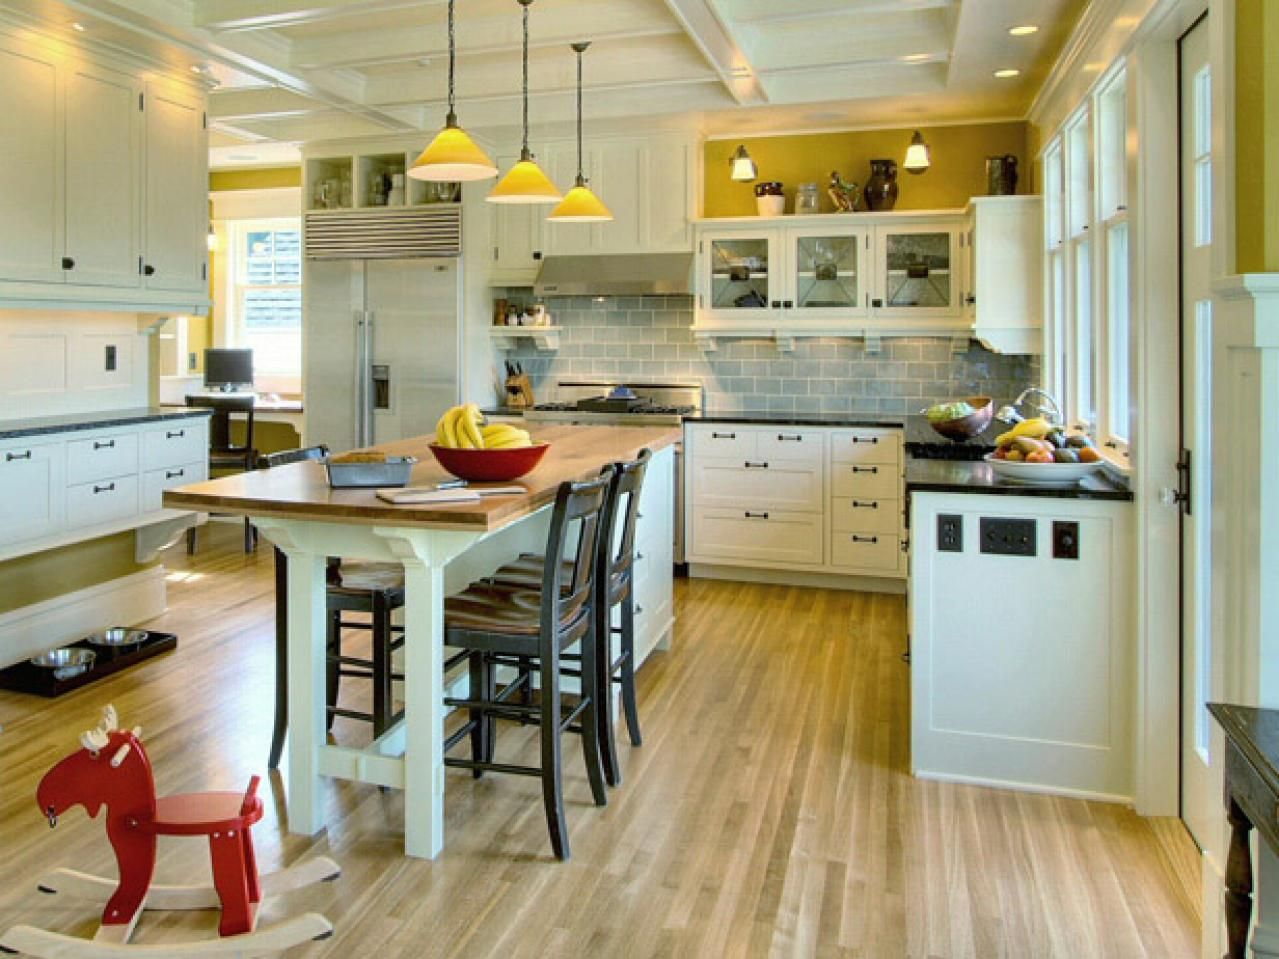 Cooking Island These 20 Stylish Kitchen Island Designs Will Have You